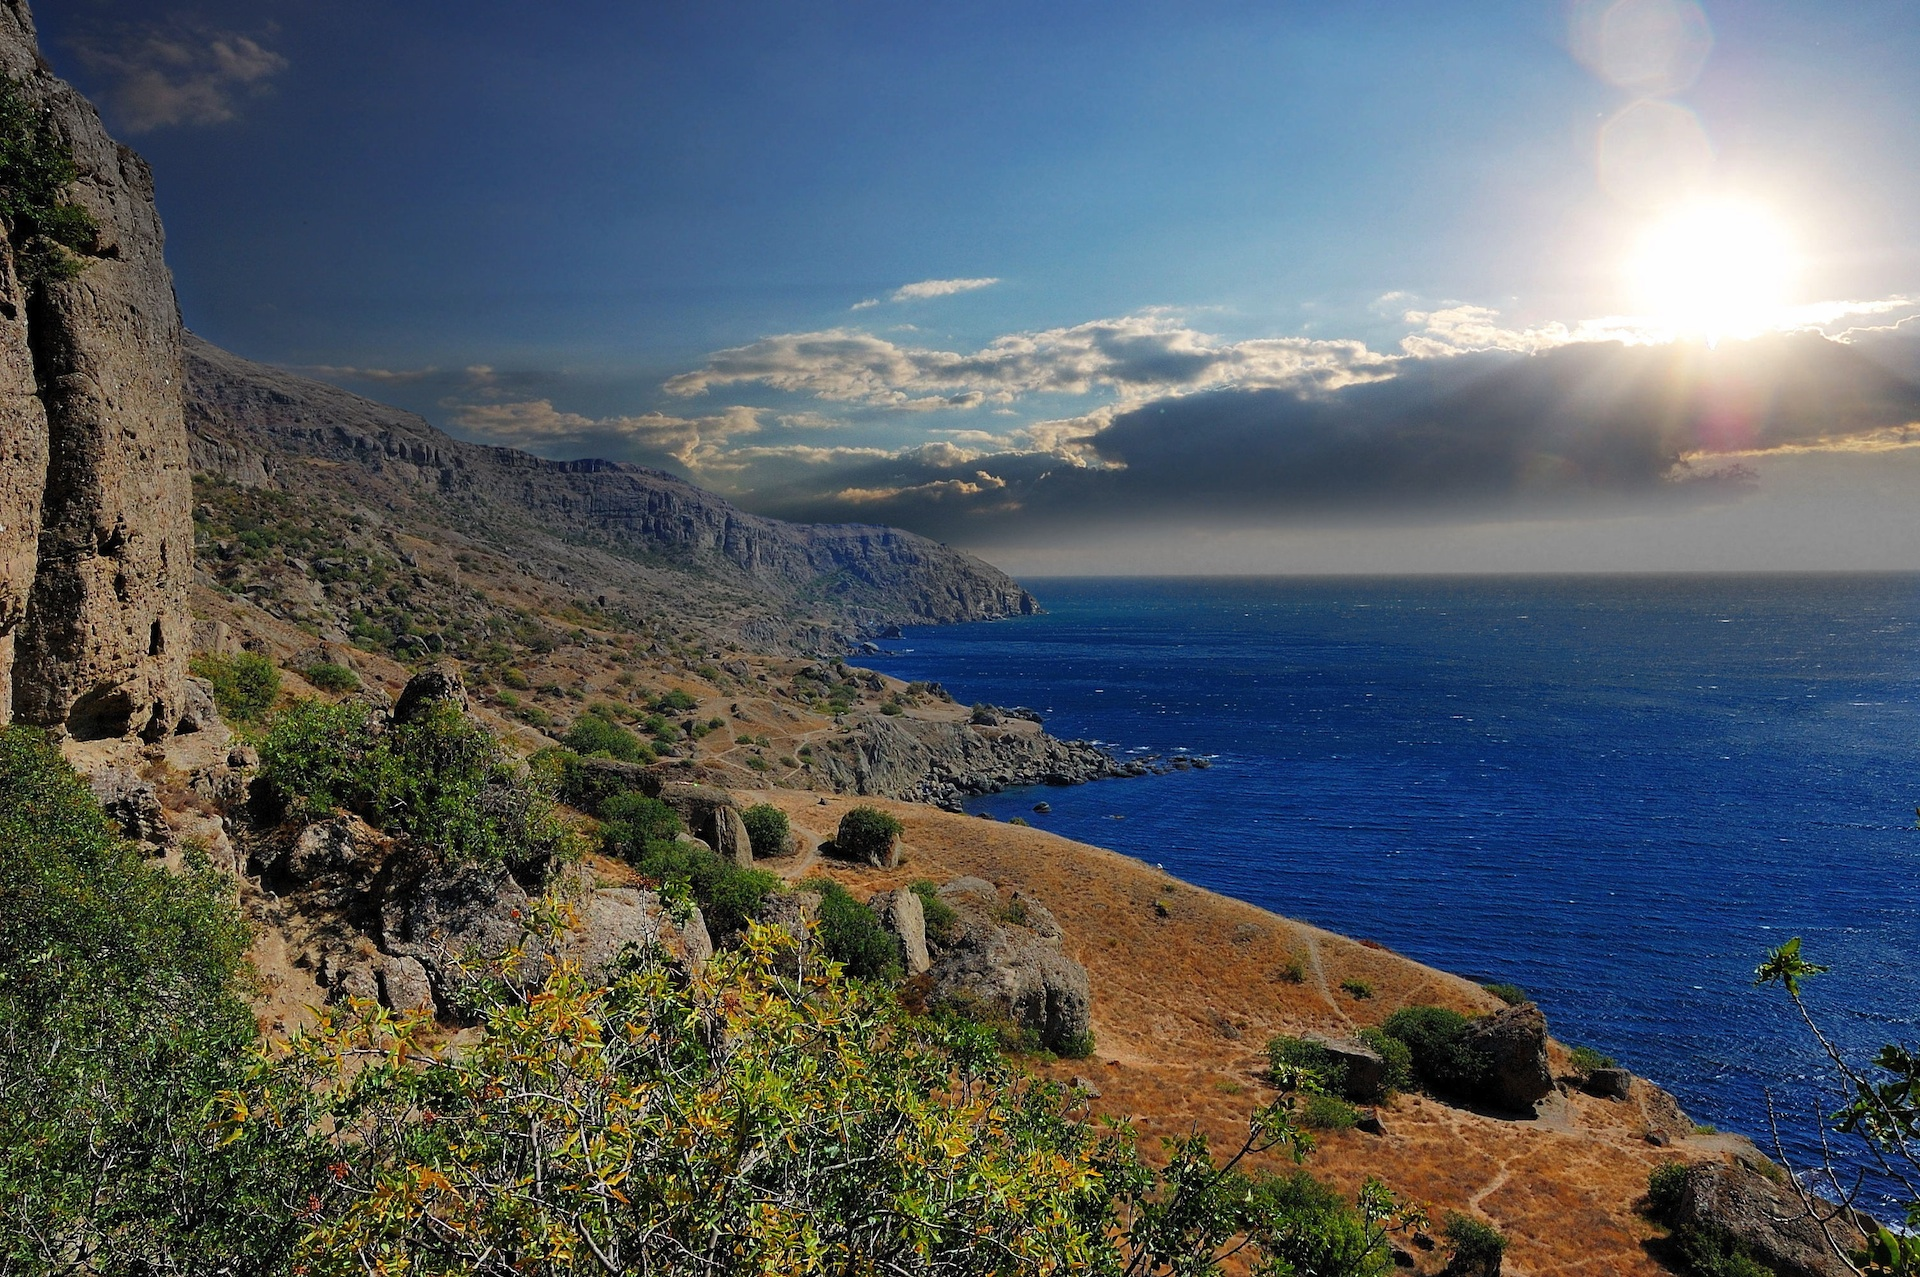 Hawaii Desktop Wallpaper Hd Crimea Sees Budget Revenues Double In Just 3 Years After